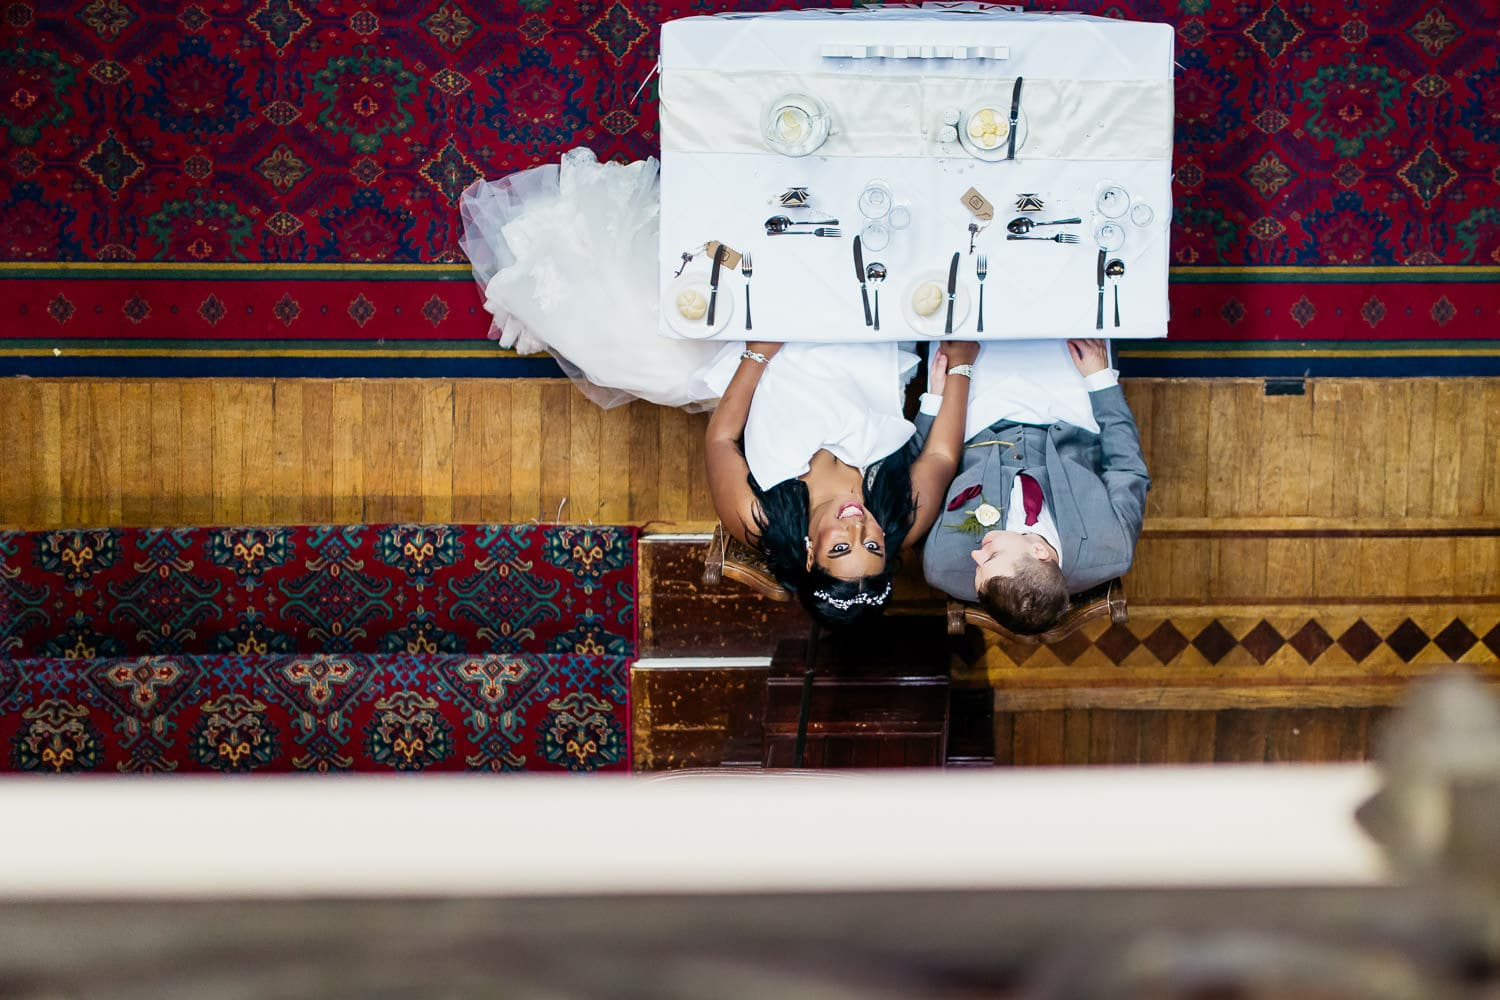 bride and groom look up at photographer standing above on balcony